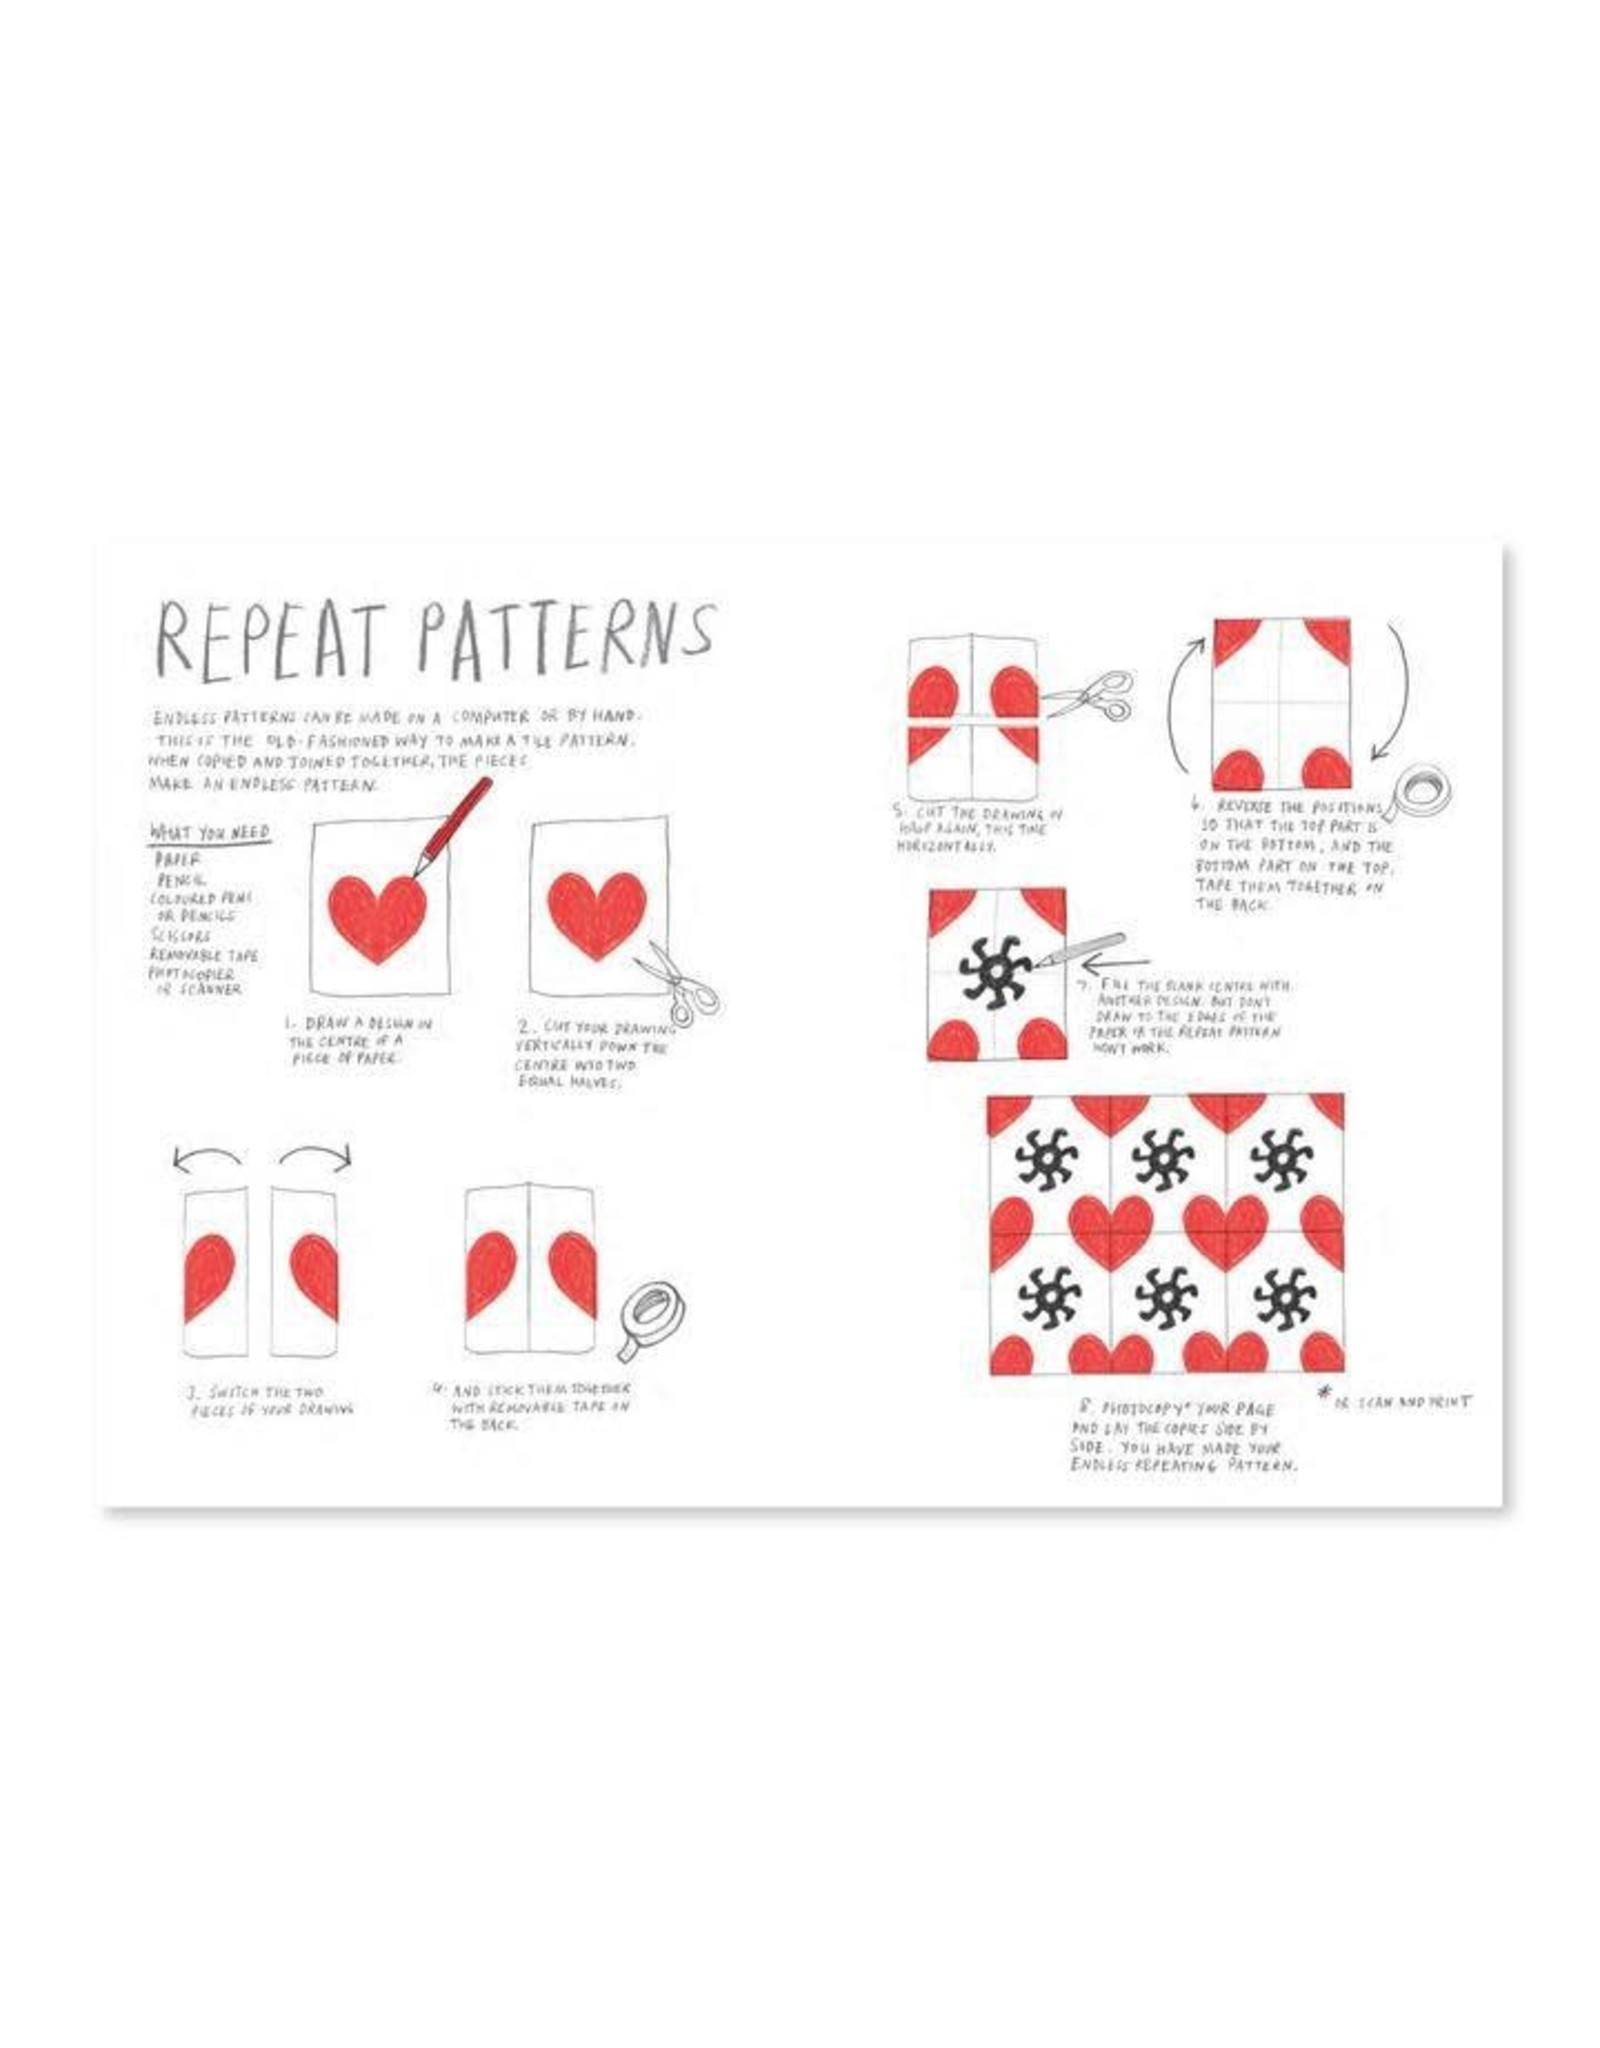 Raincoast Books Let's Make Some Great Art: Patterns